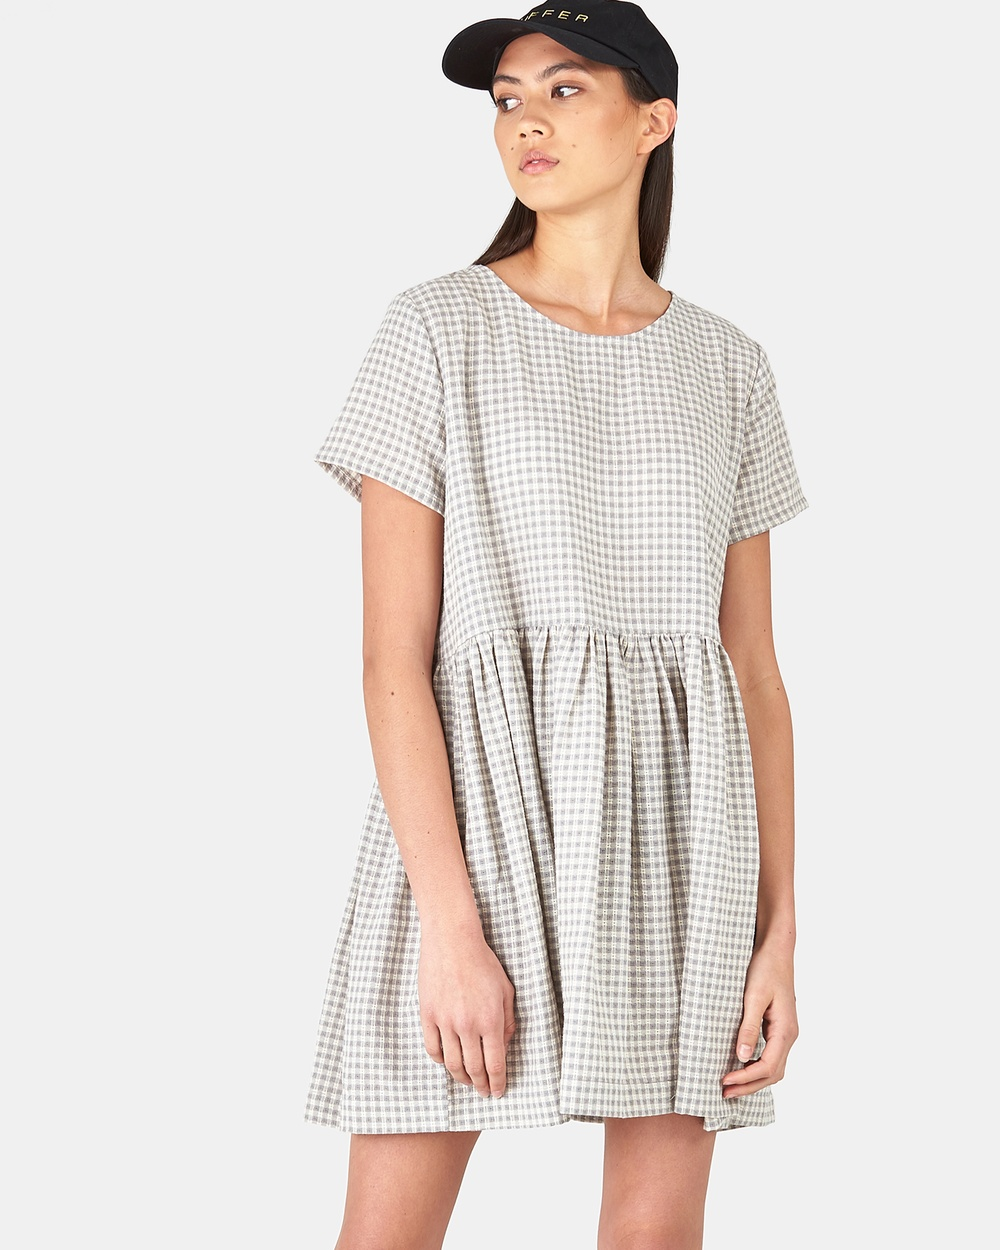 Huffer Hustle Park Dress Dresses GREY Hustle Park Dress